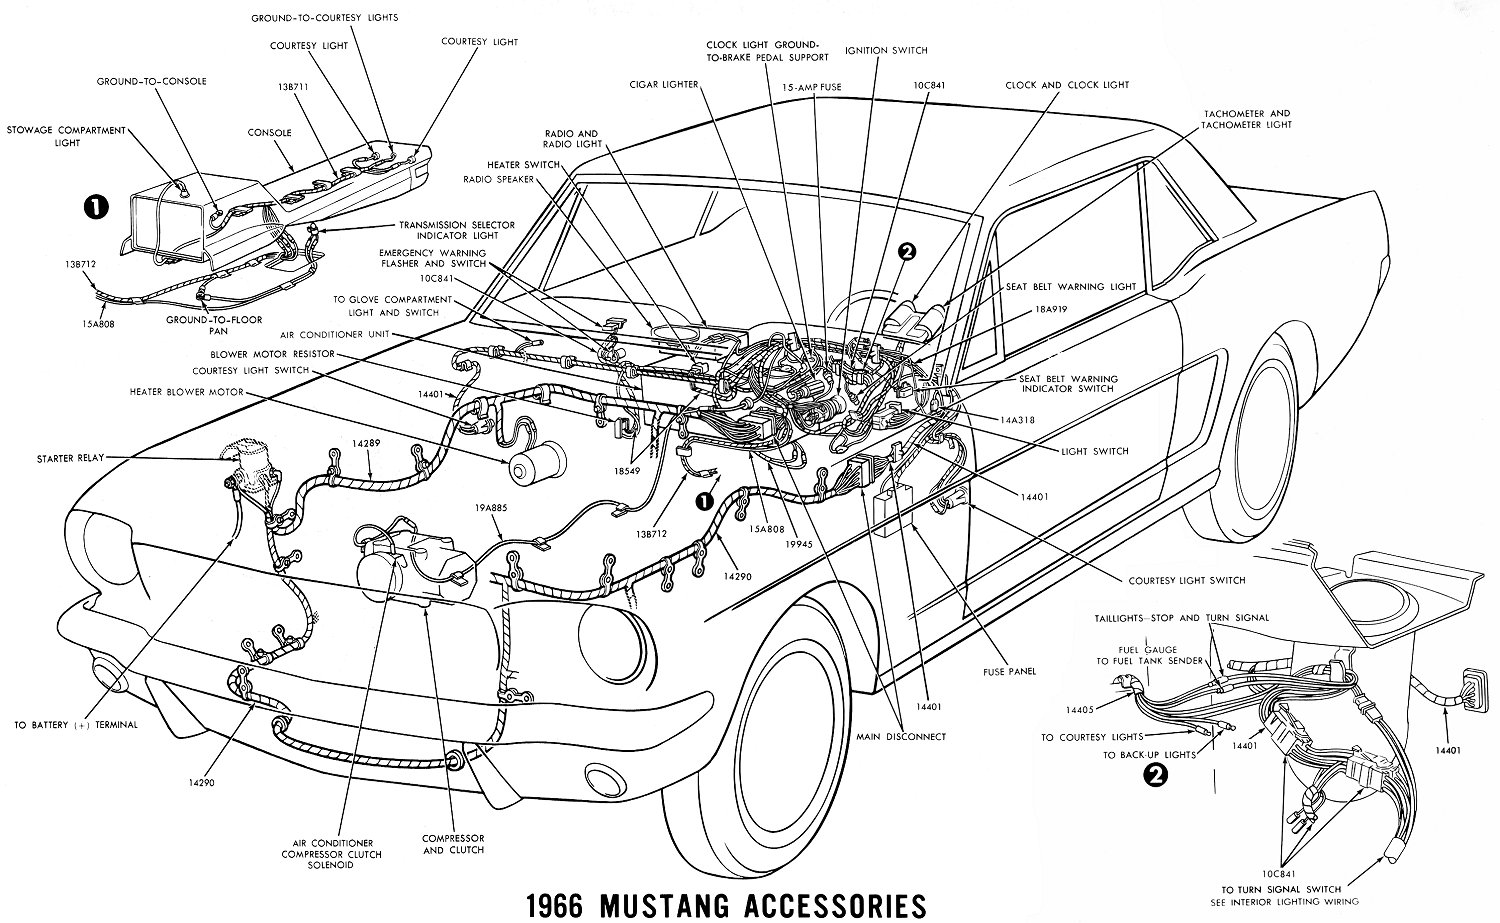 1968 ford mustang wiring diagram schematic 66 mustang wiring diagram schematic #13